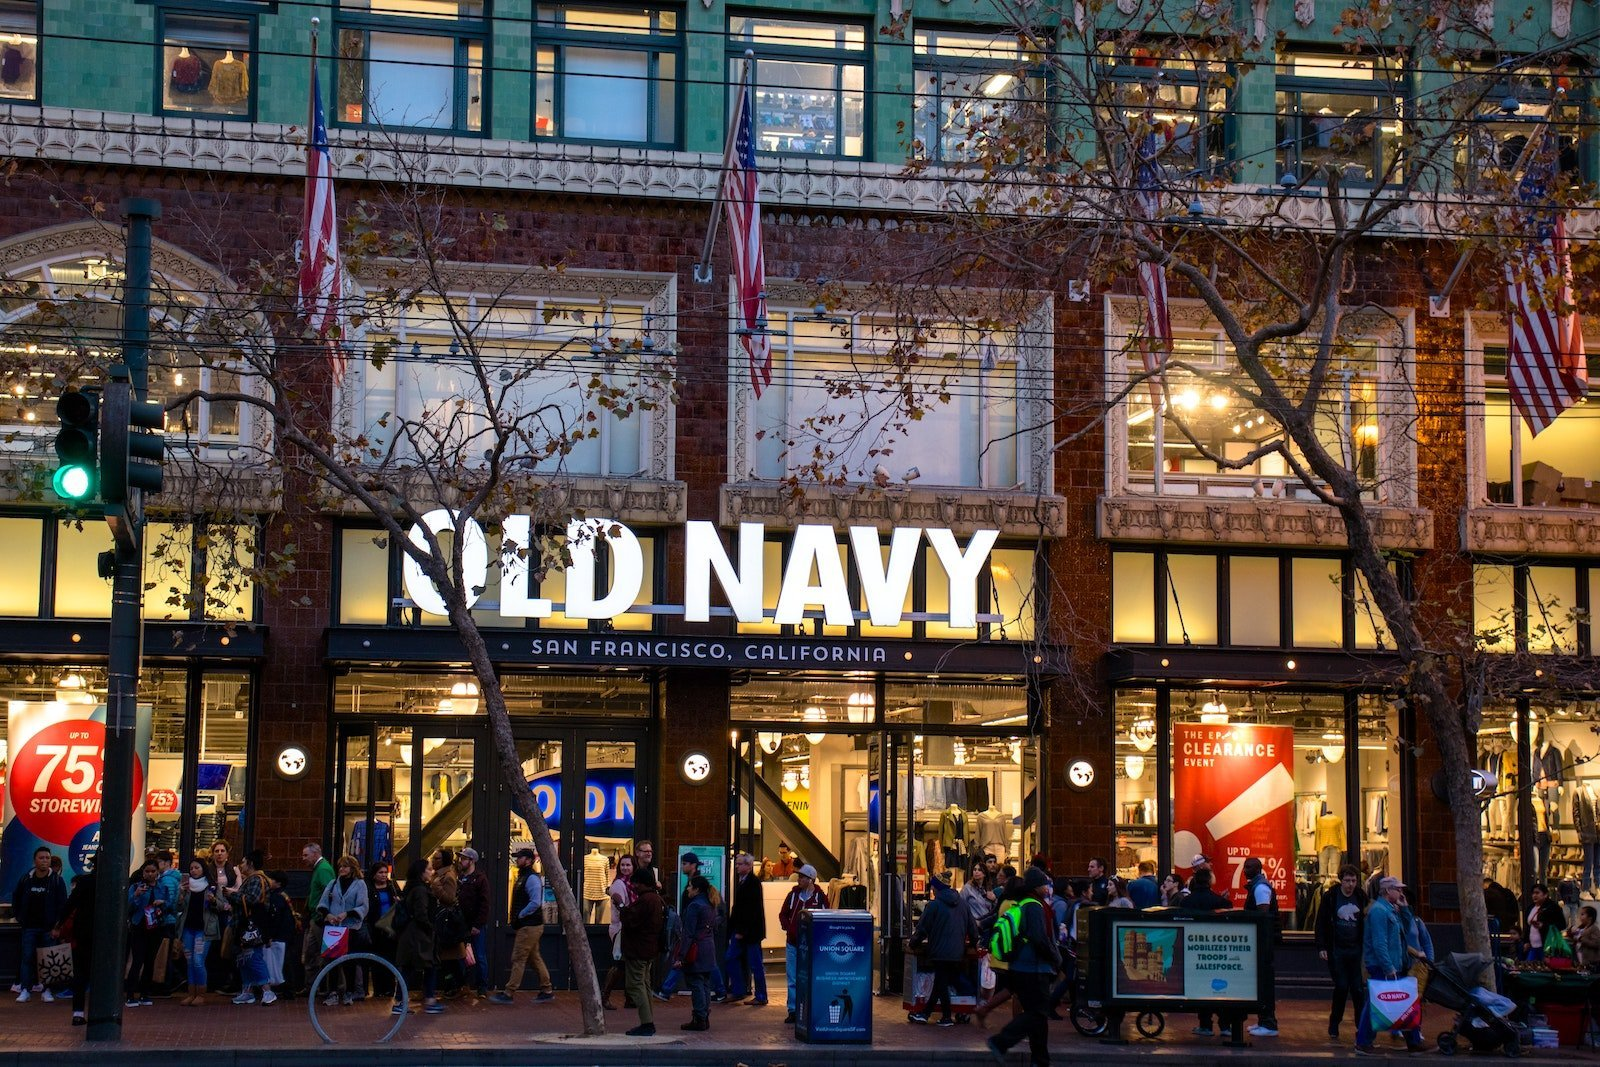 street-level view of the storefront of Old Navy on a busy city street